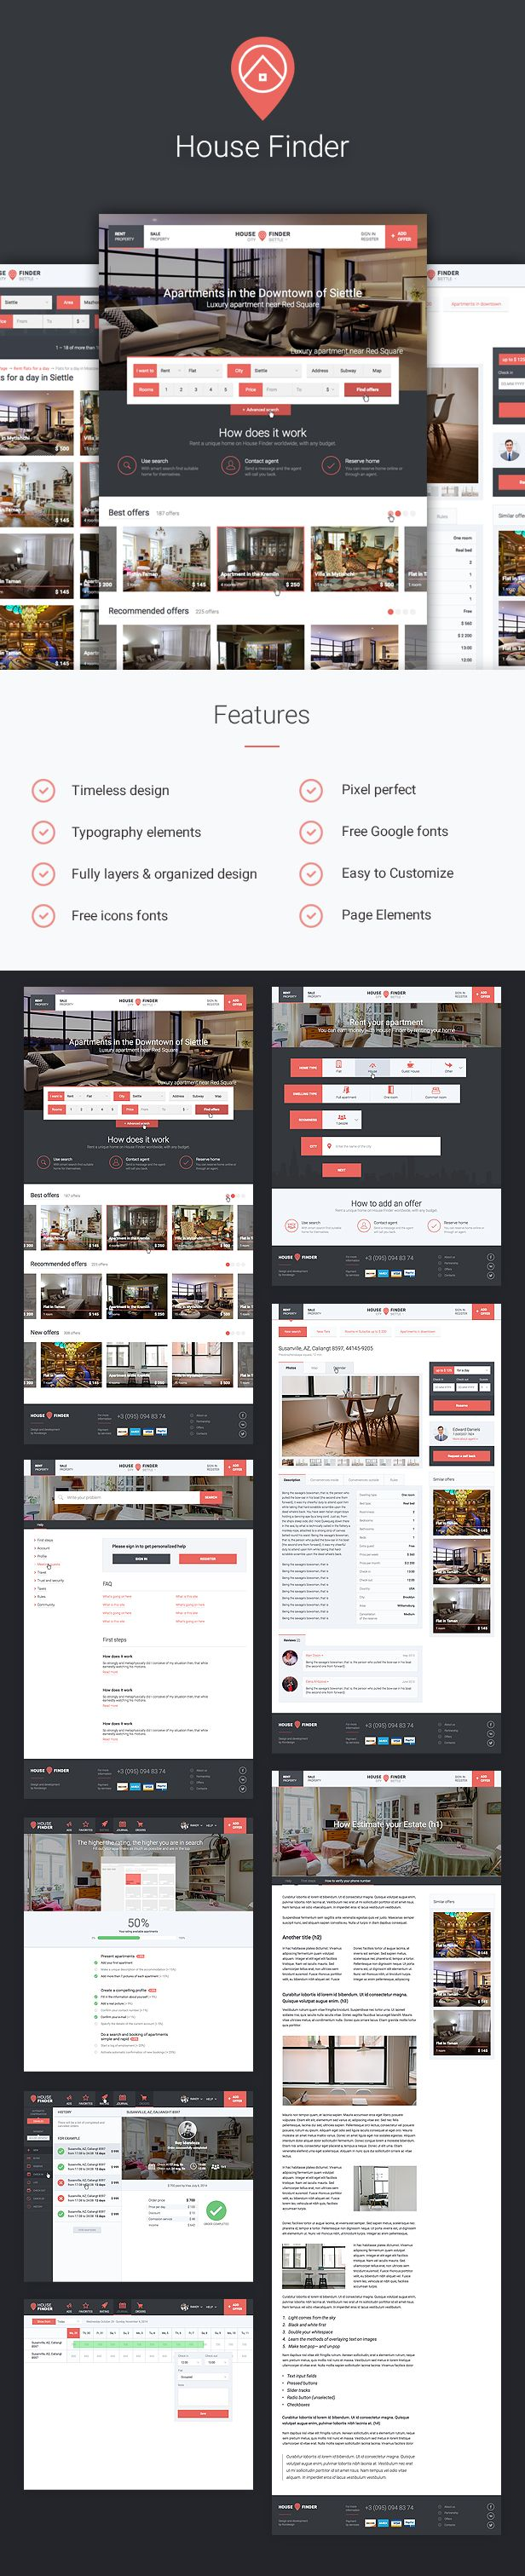 House Finder is a high quality template. This template will be helpful for those who are going to make a startup in real estate spere or are going to create a large real estate database o...